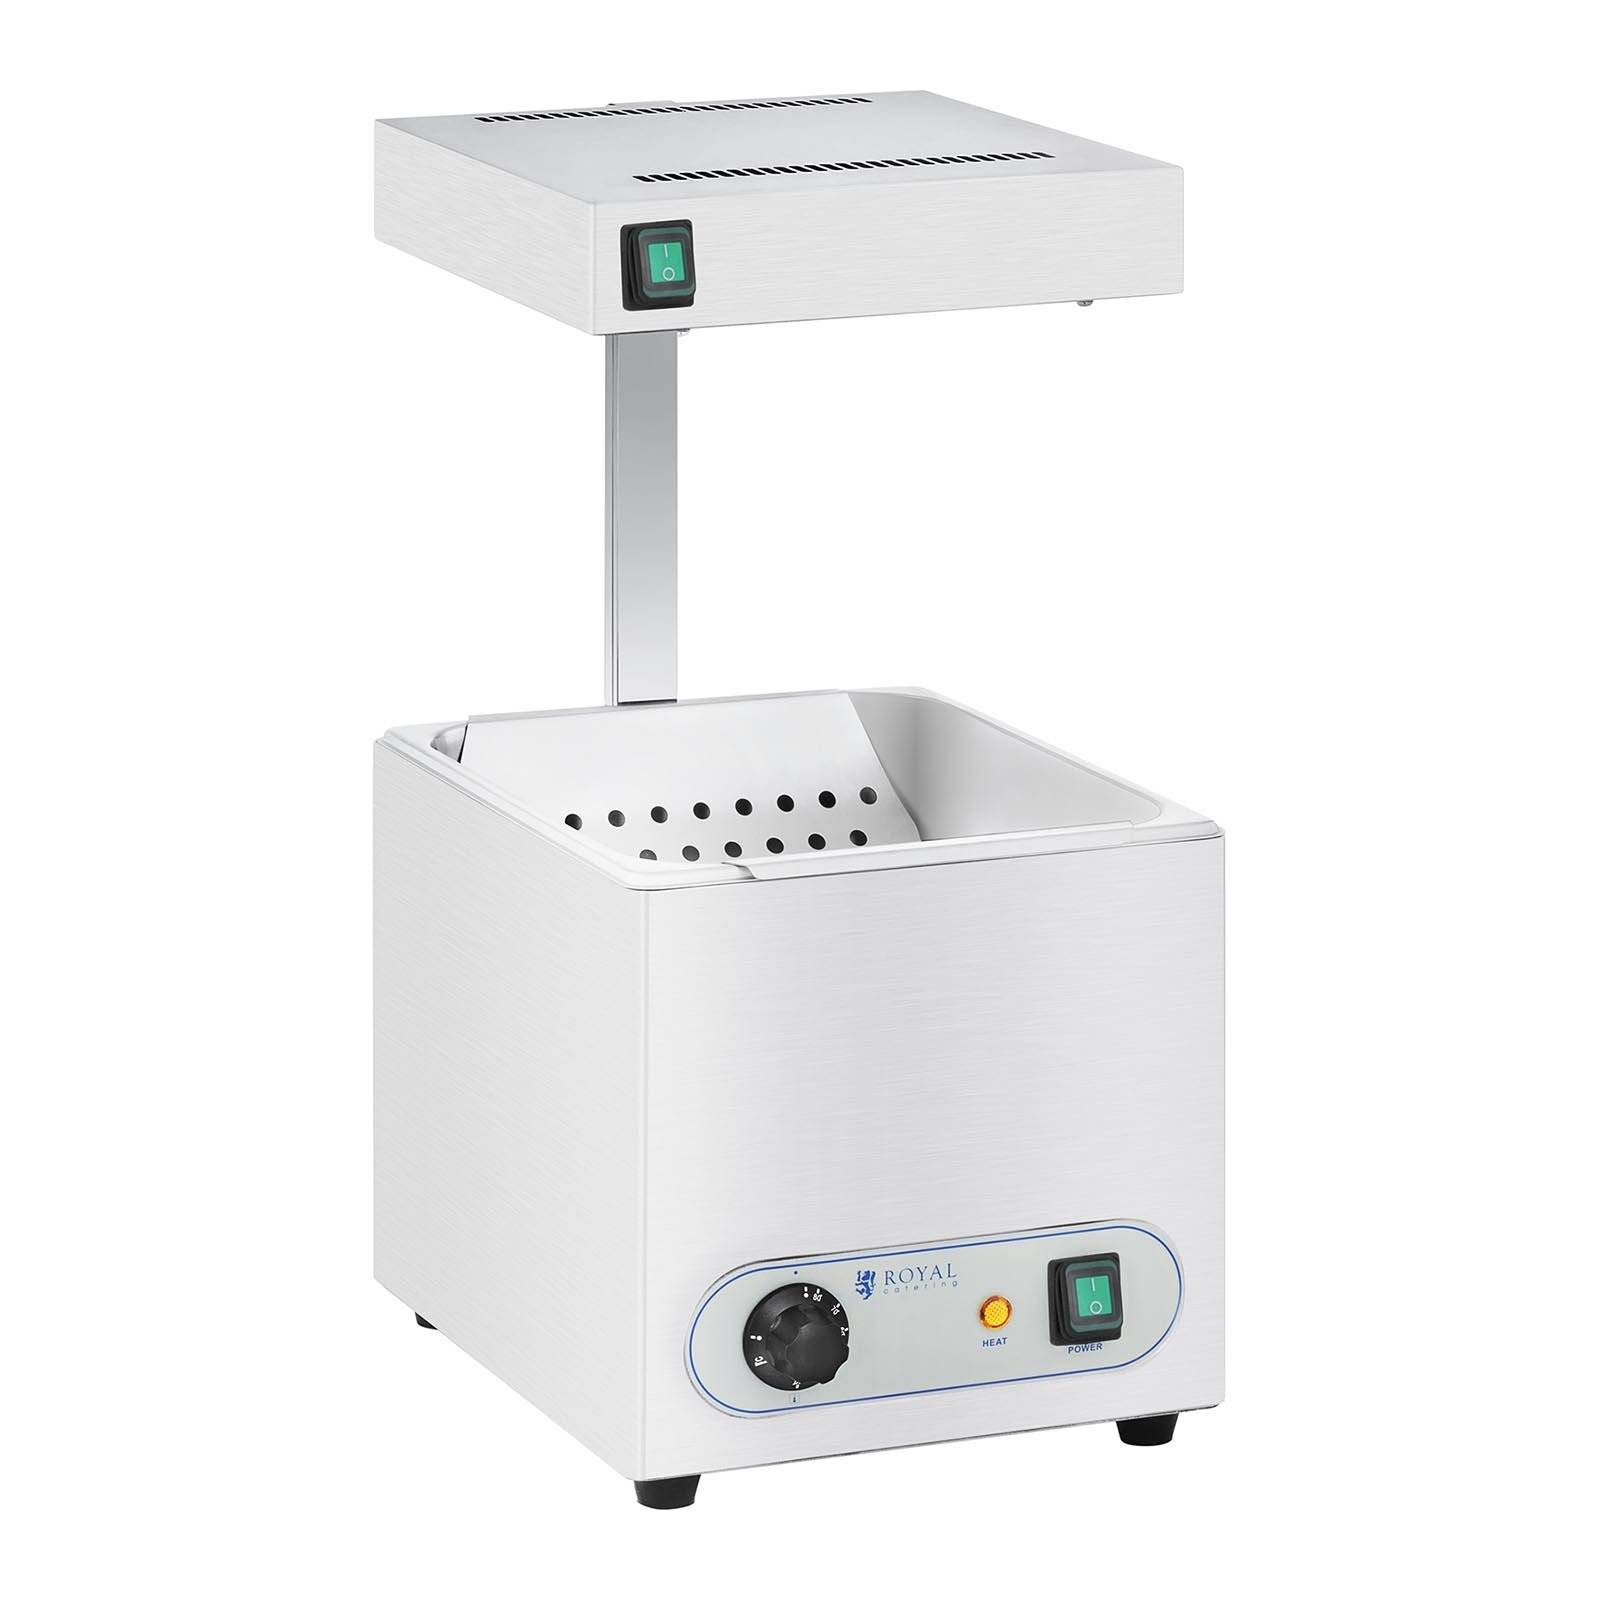 Royal Catering Chauffe frite et lampe chauffante infrarouge - 850 W RCWG-1500